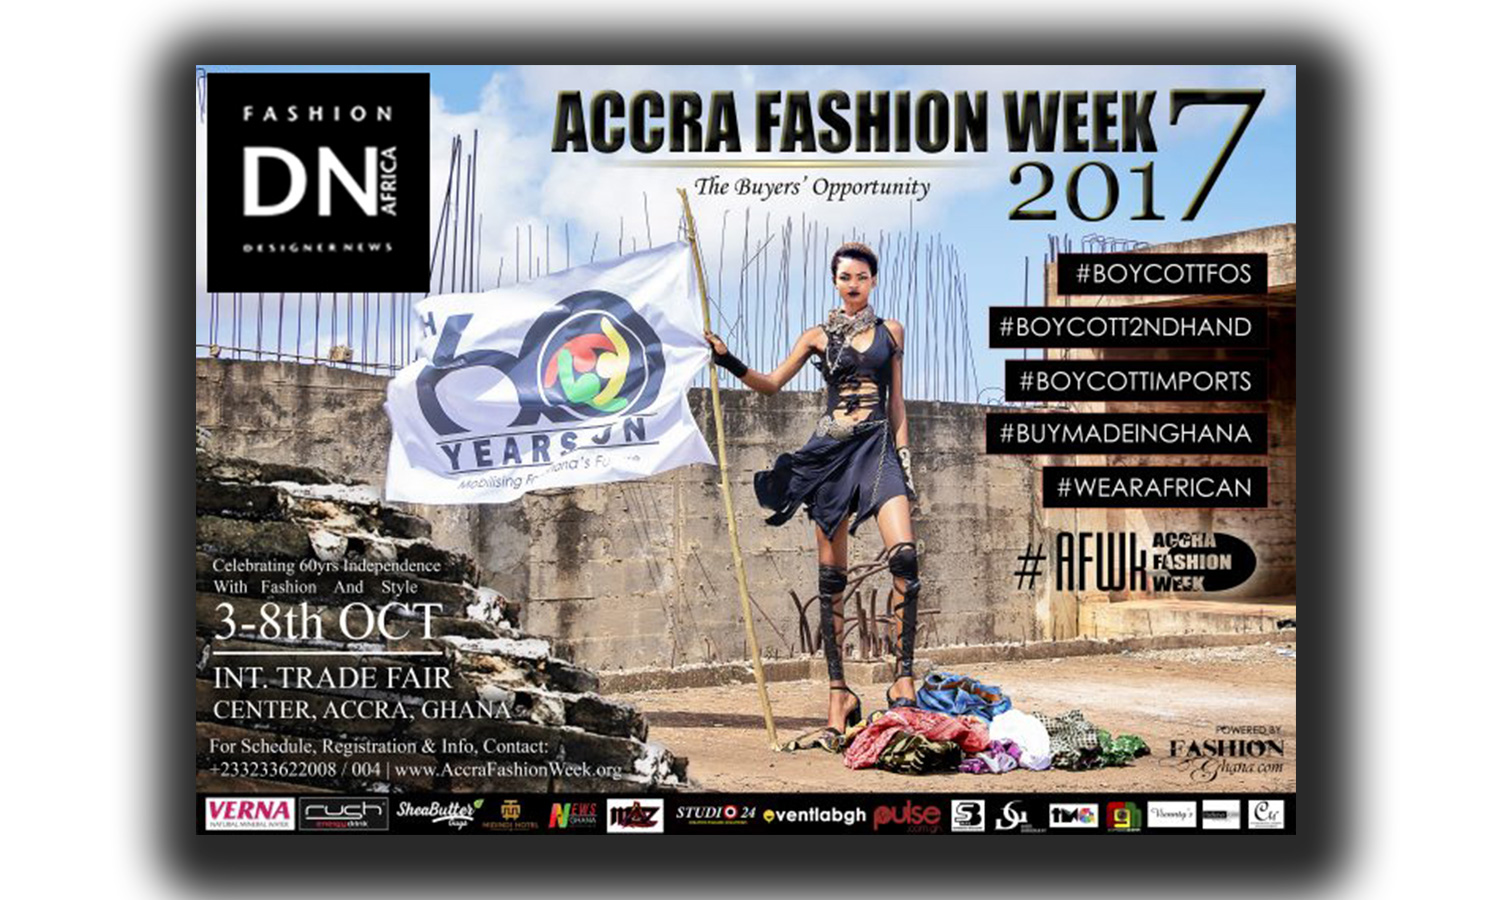 ACCRA FASHION WEEK 2017